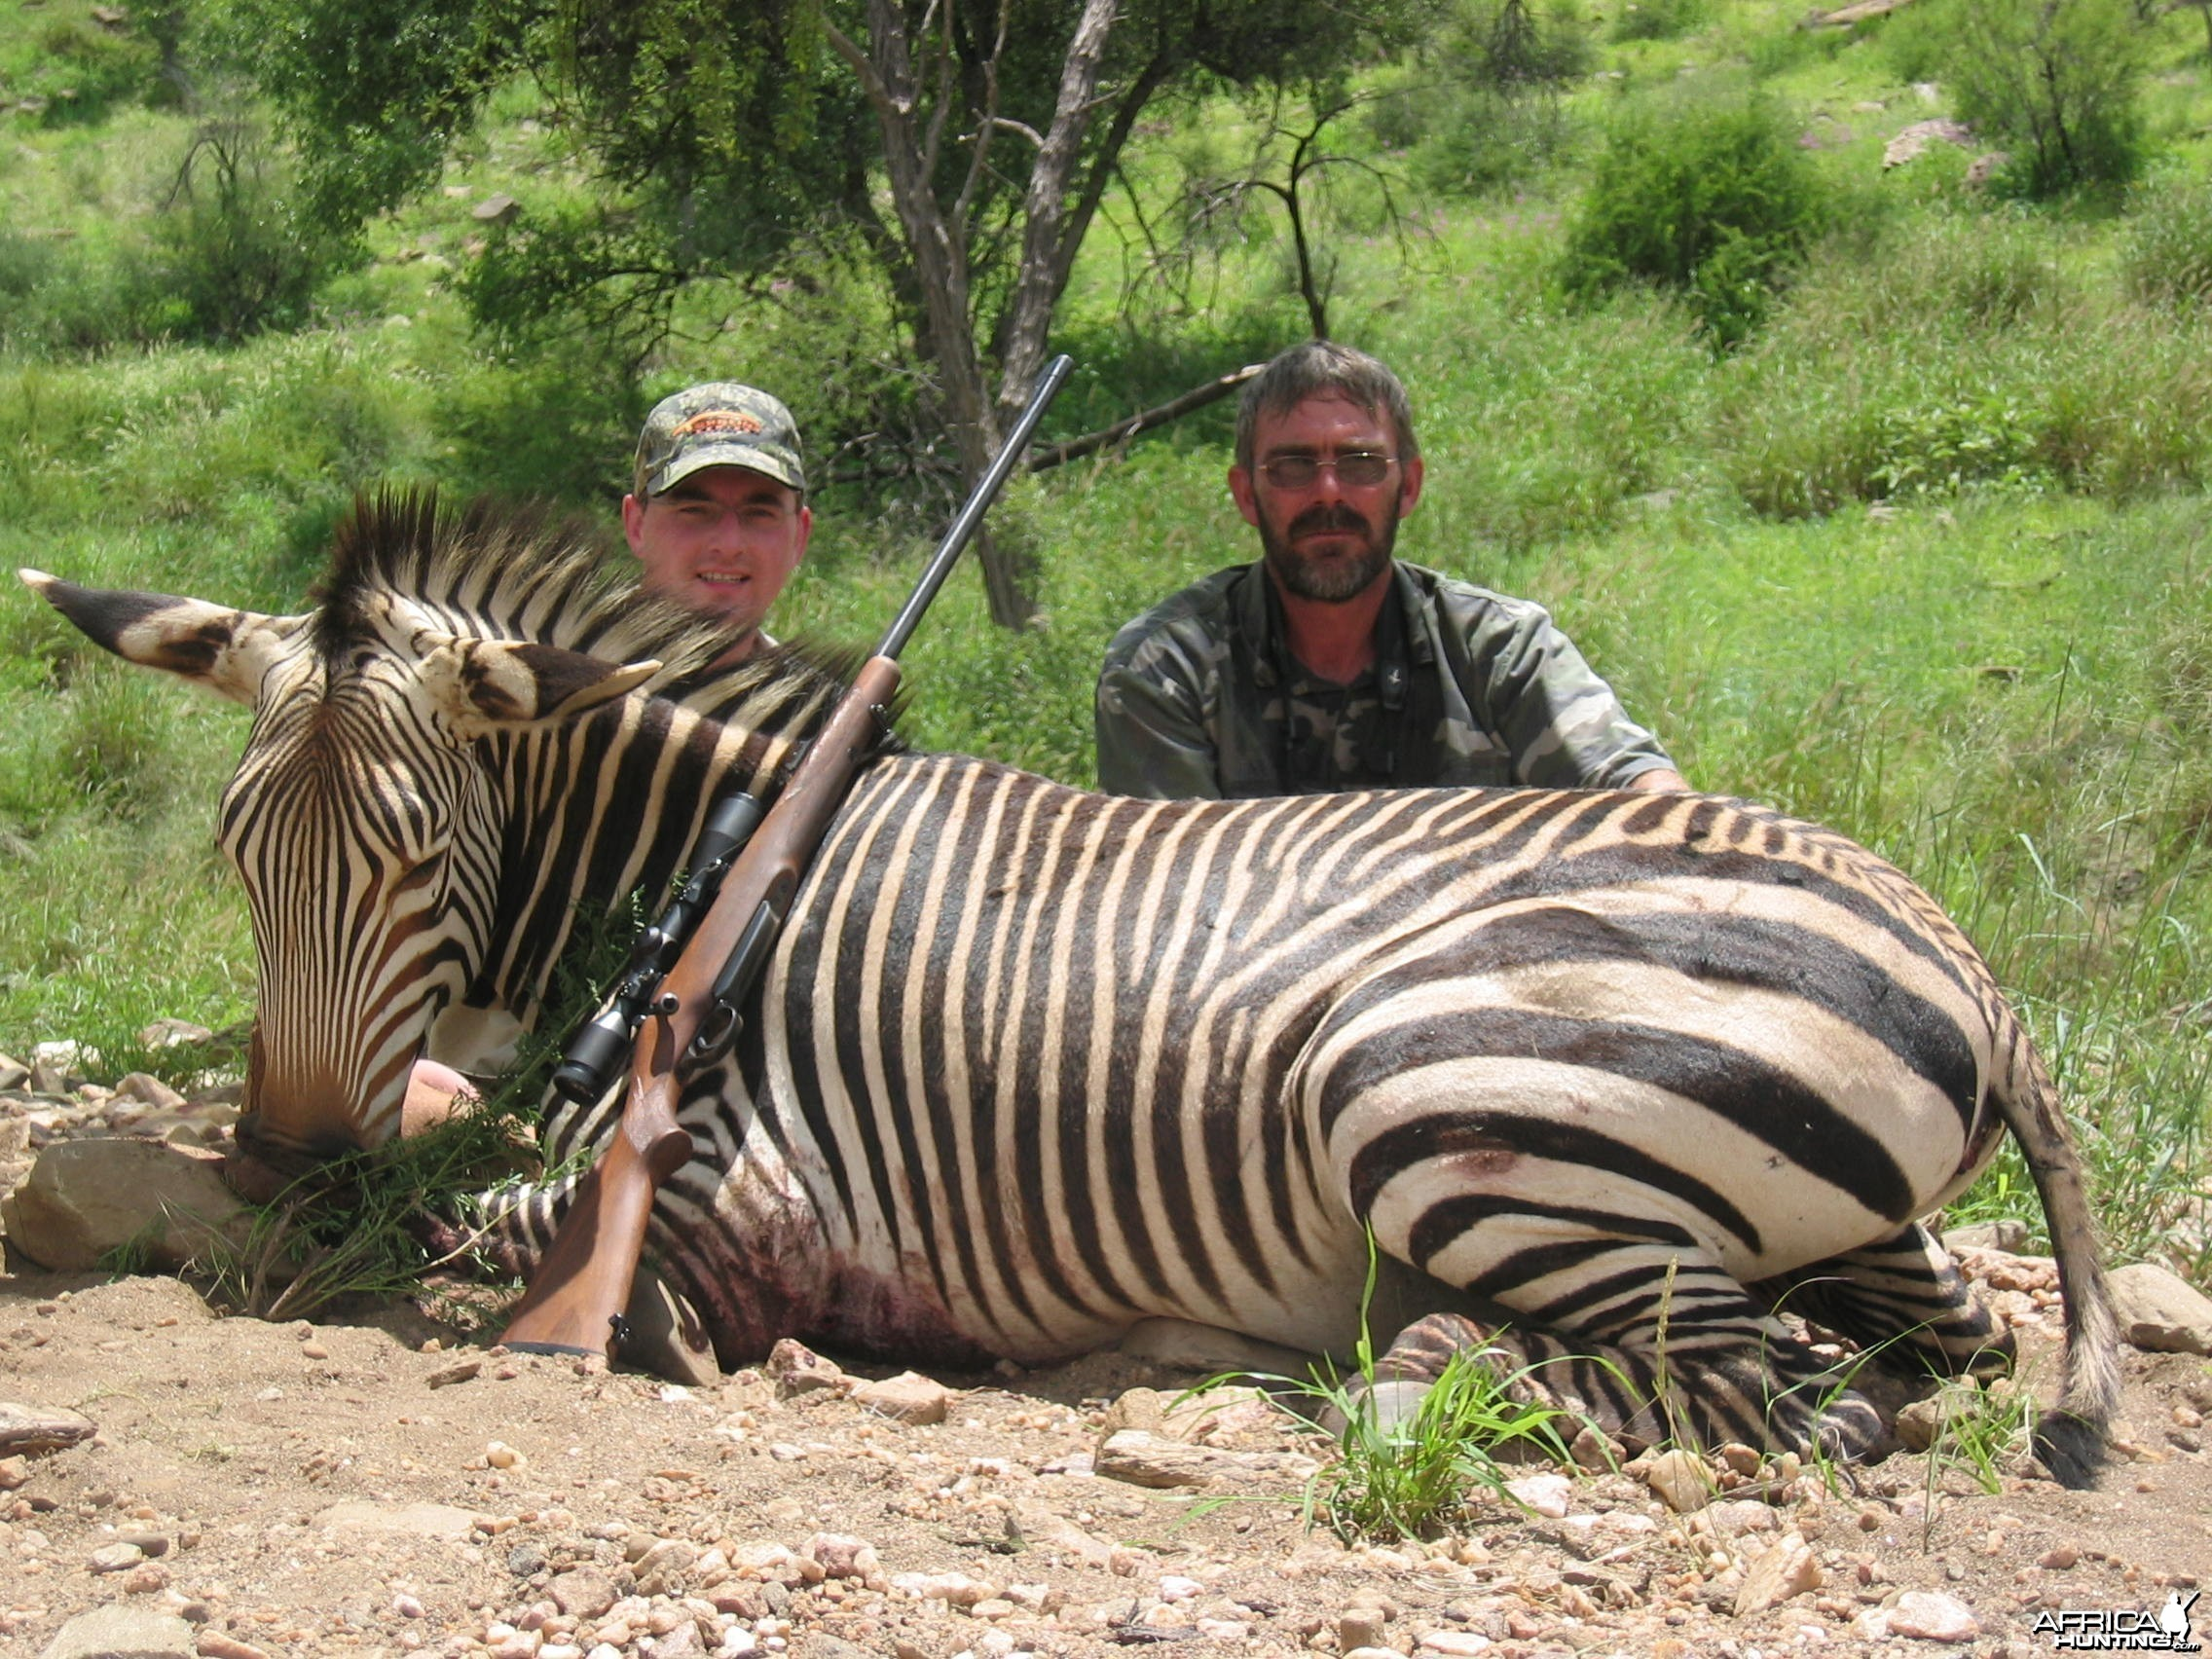 Mountain zebra, Namibia 2006